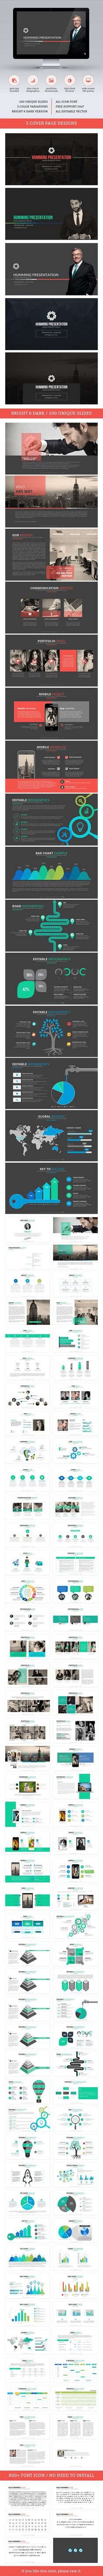 Humming PowerPoint Template #design #slides #presentation Download: http://graphicriver.net/item/humming-powerpoint/13132107?ref=ksioks